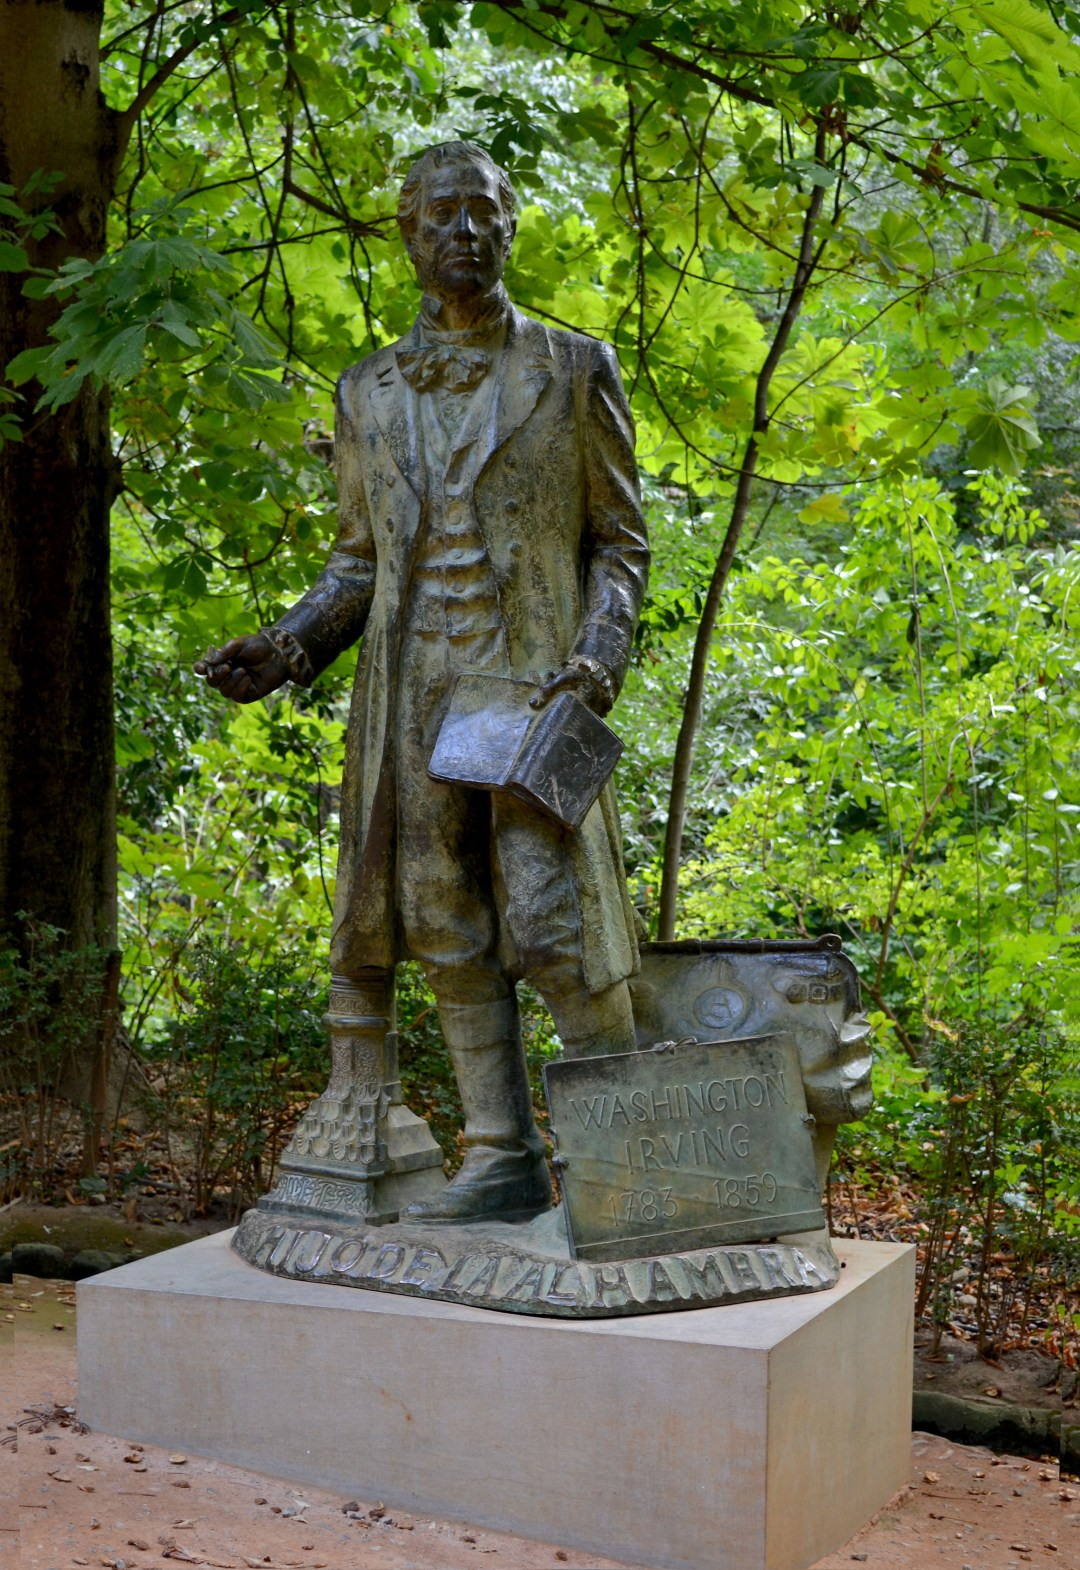 Washington Irving statue in the World Heritage Alhambra Woods in Granada Spain